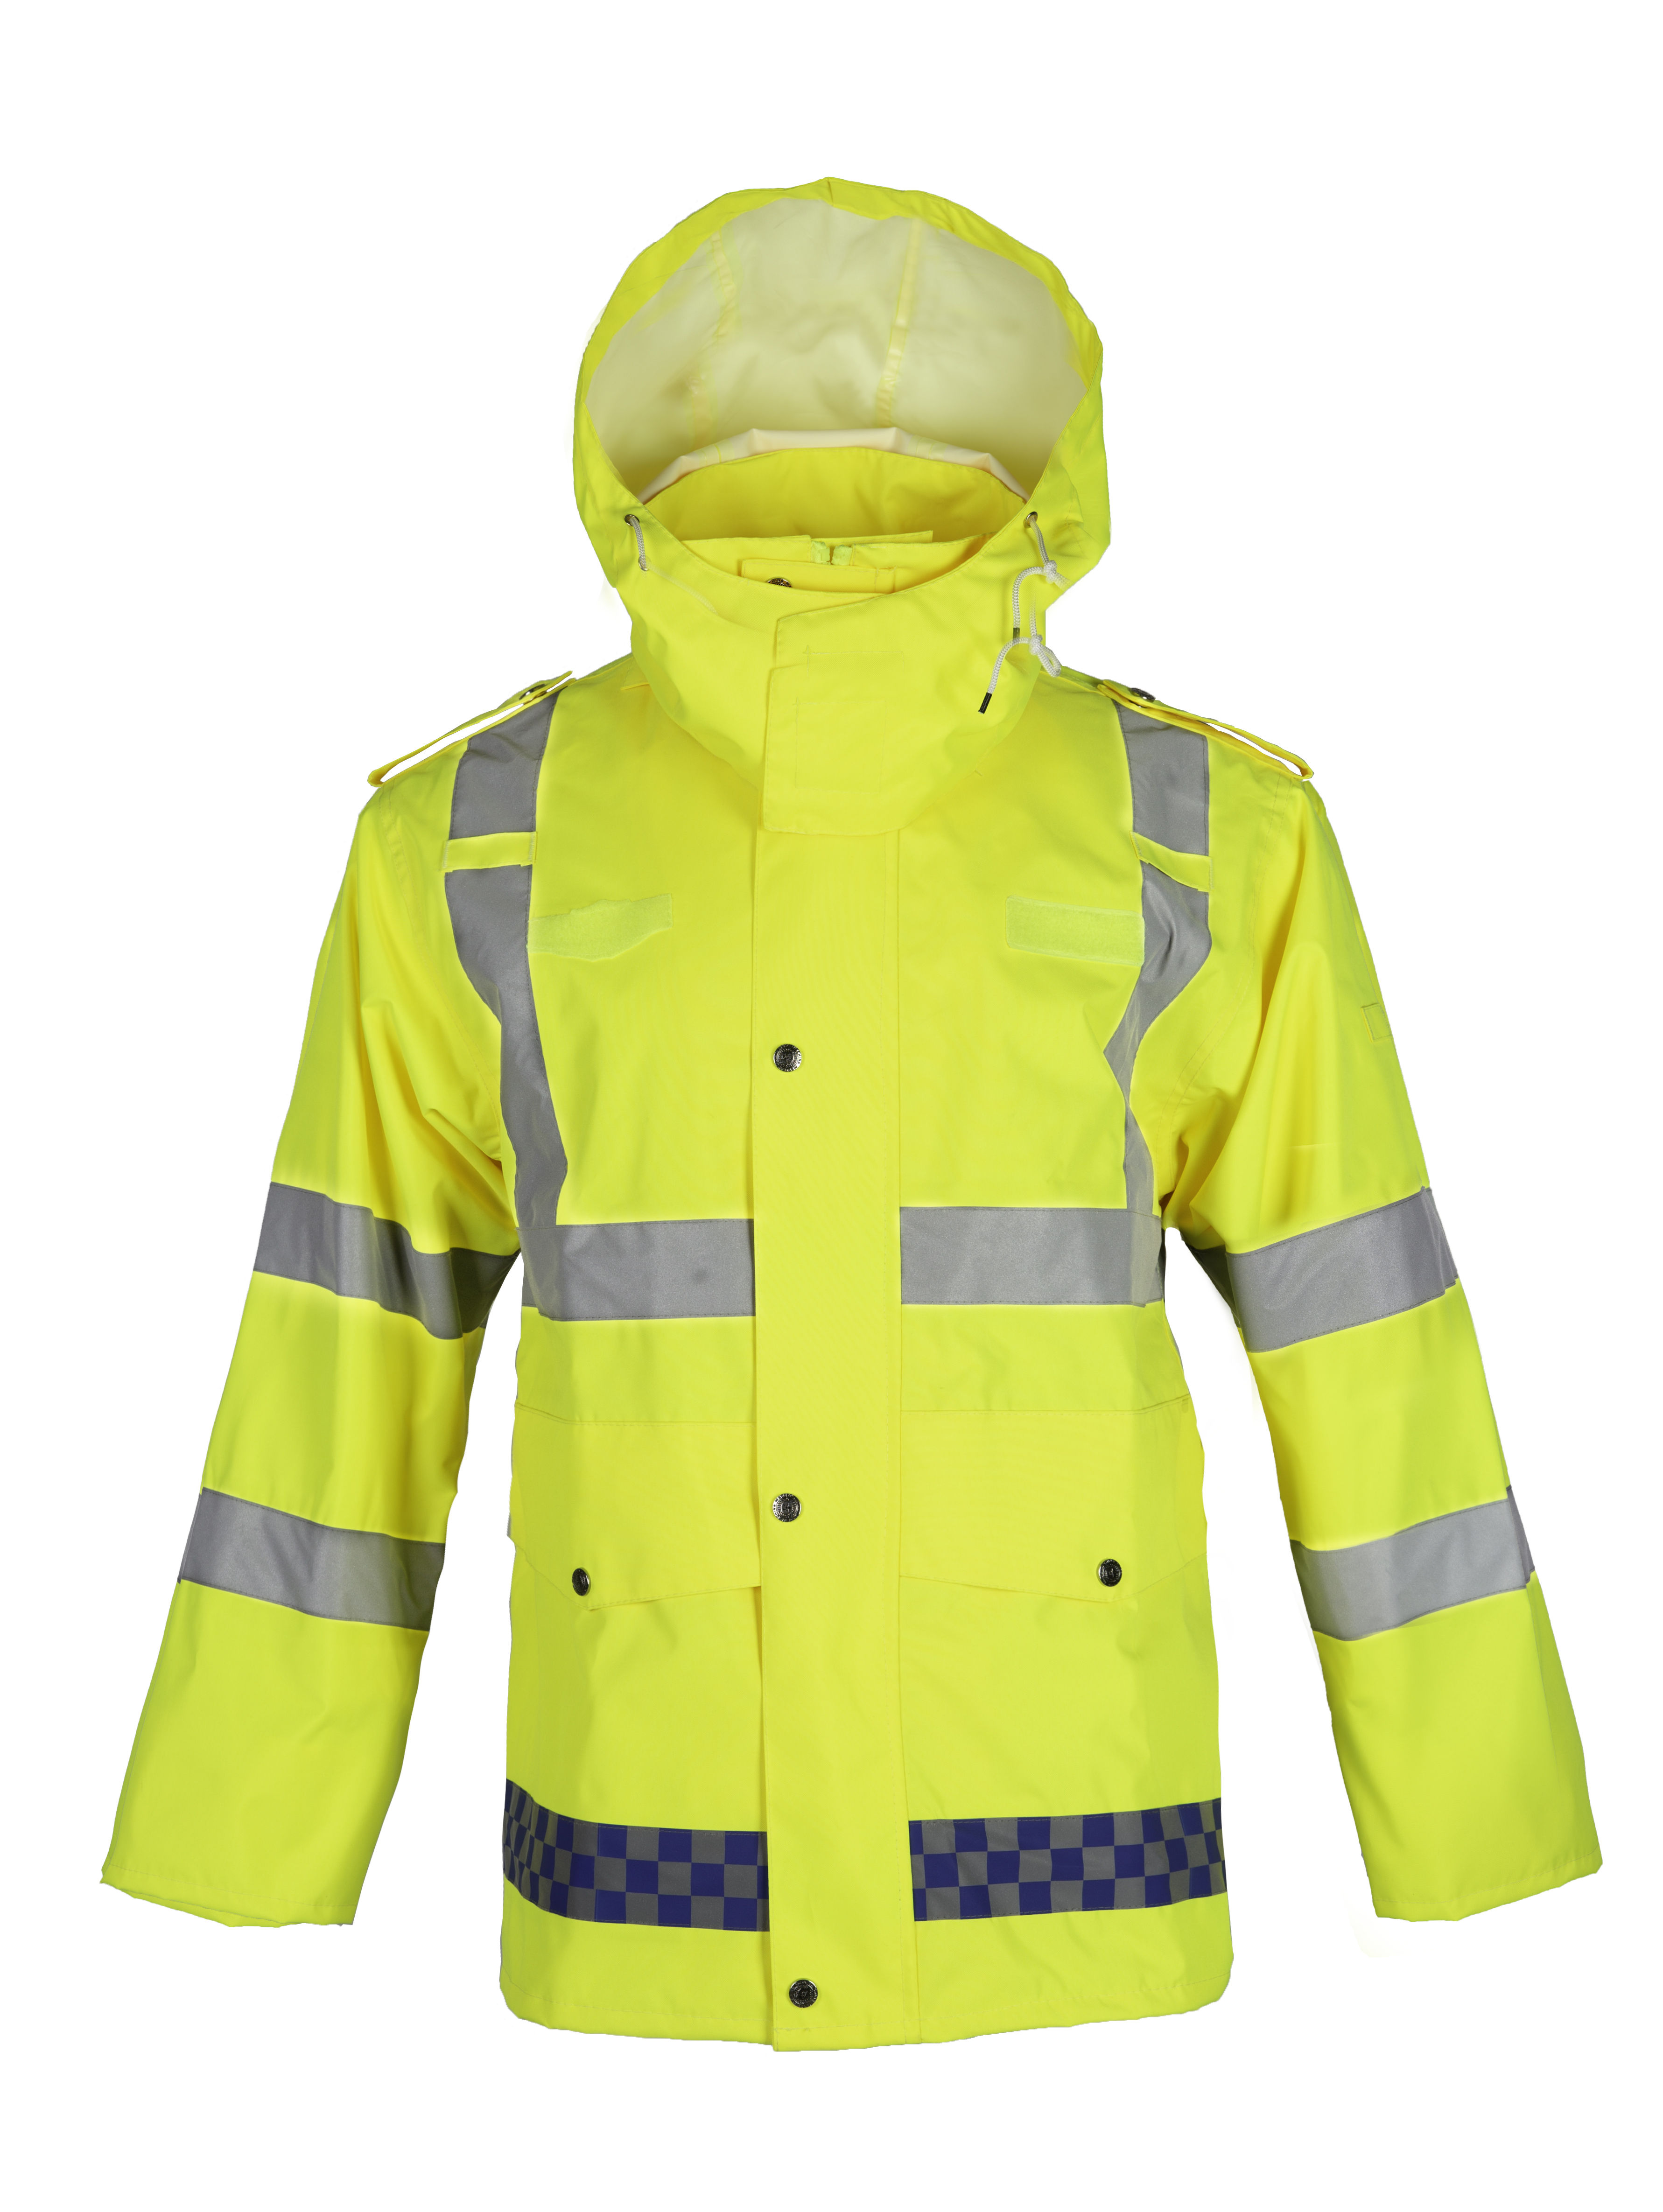 Reflective work raincoat